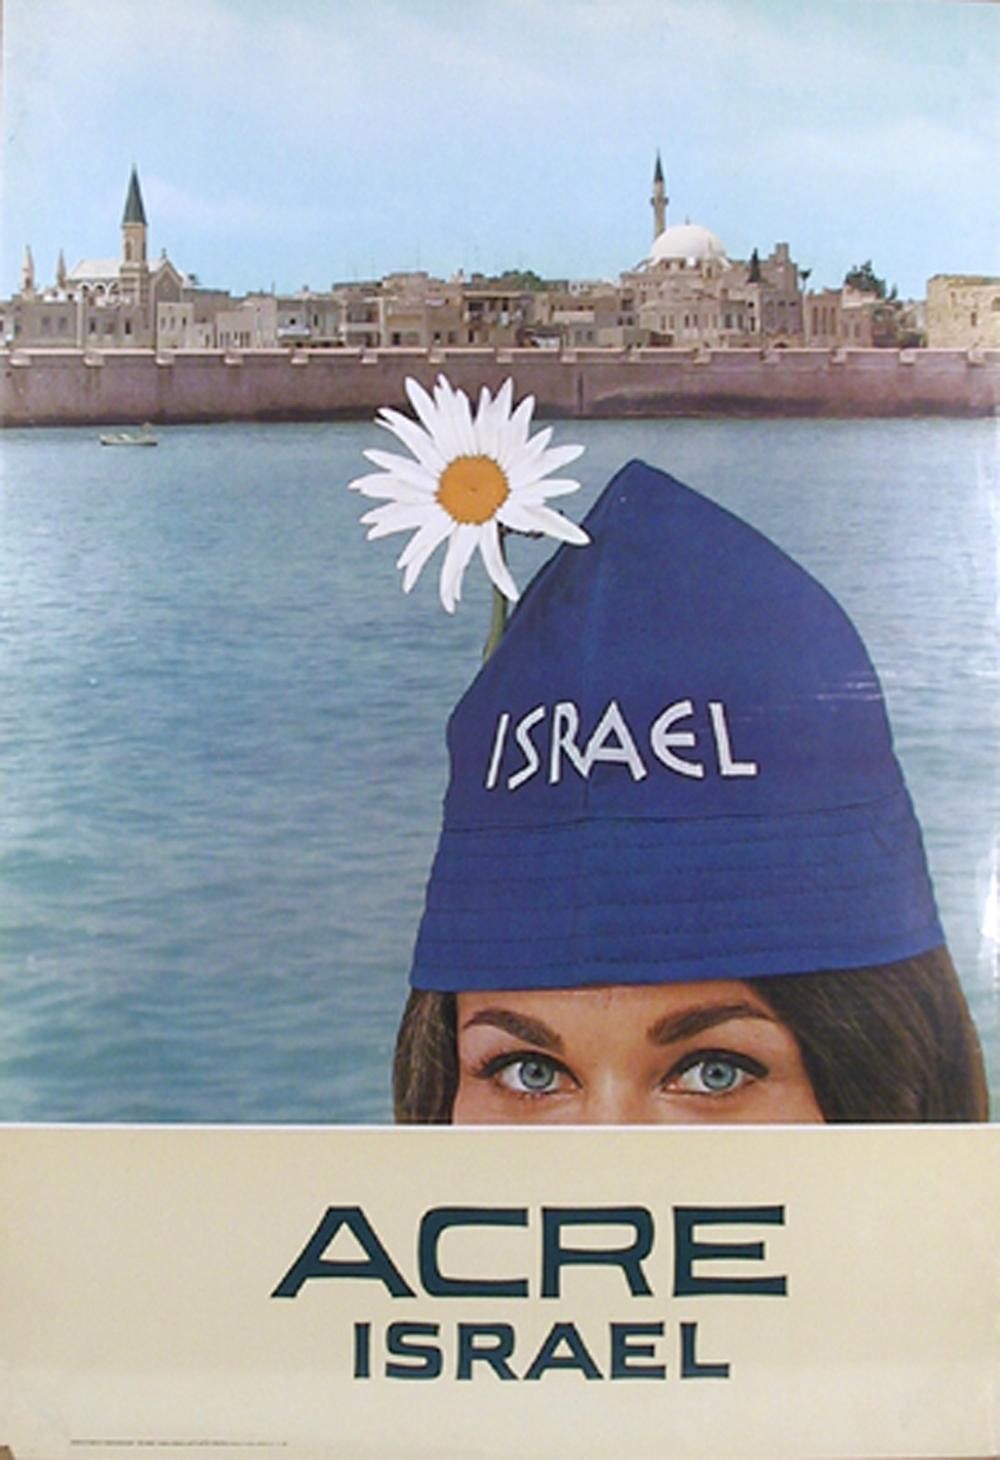 Israel : Acre, Travel Poster